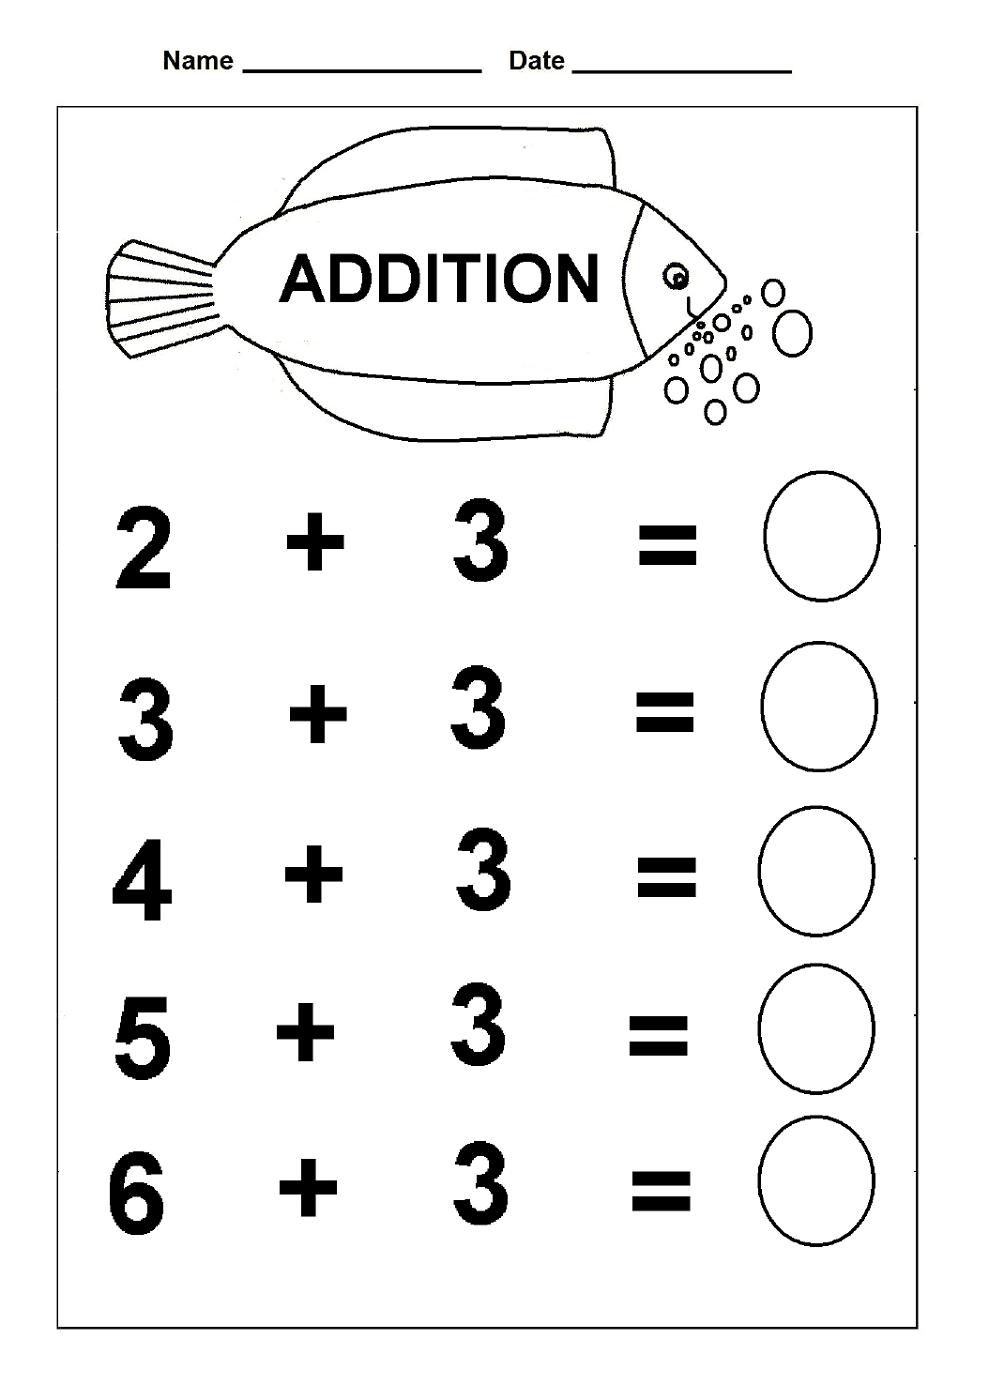 math worksheet : math fun worksheets for kids  activity shelter : Maths For Fun Worksheets